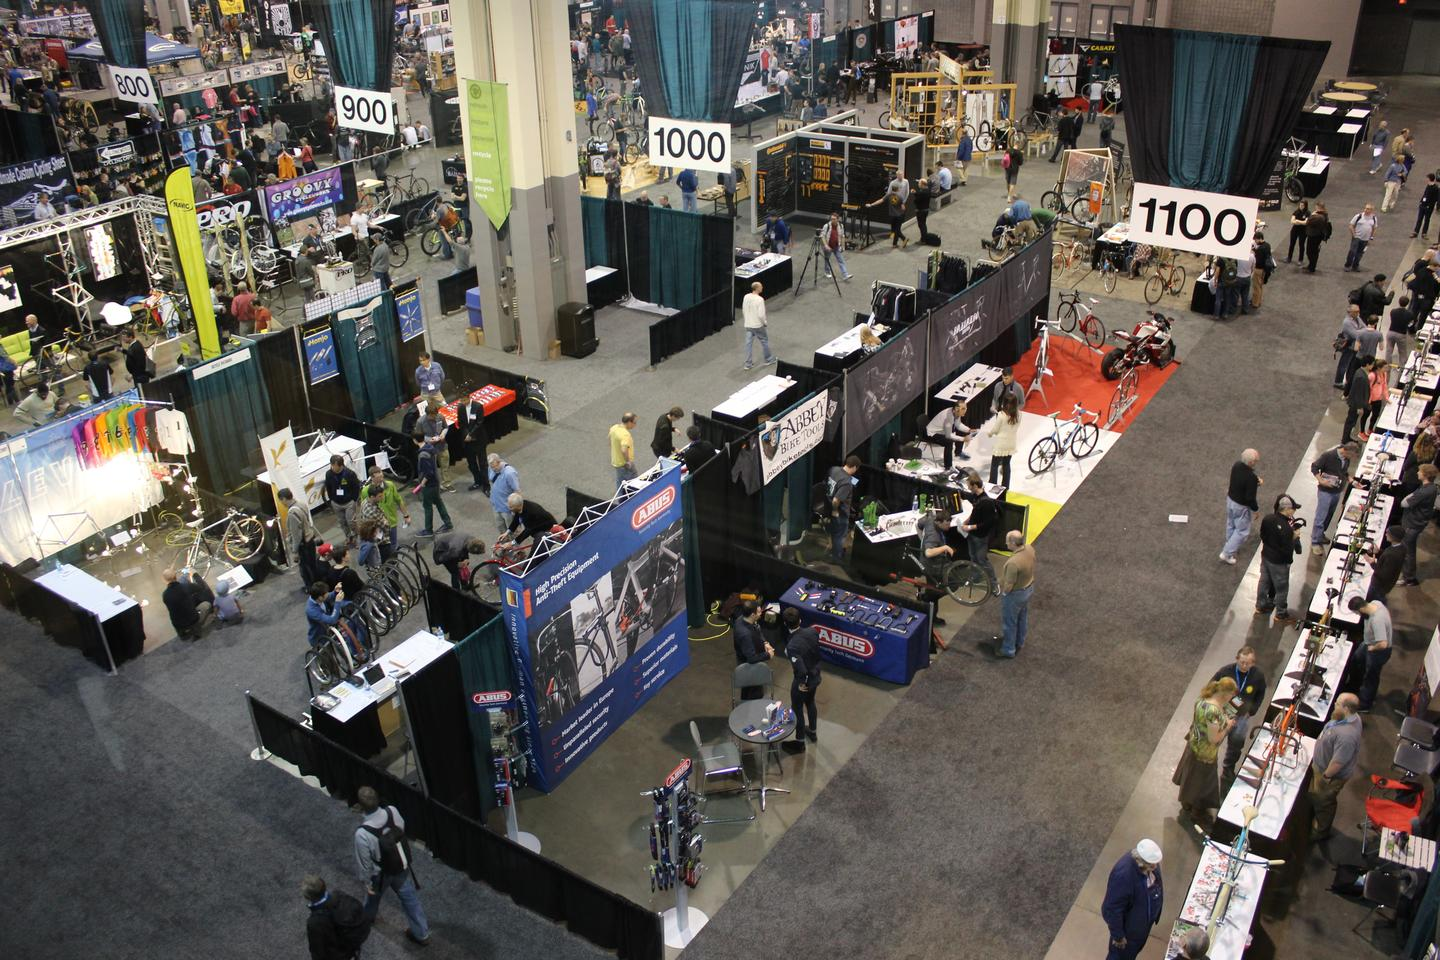 A wide view of the trade show floor – or some of it, at least